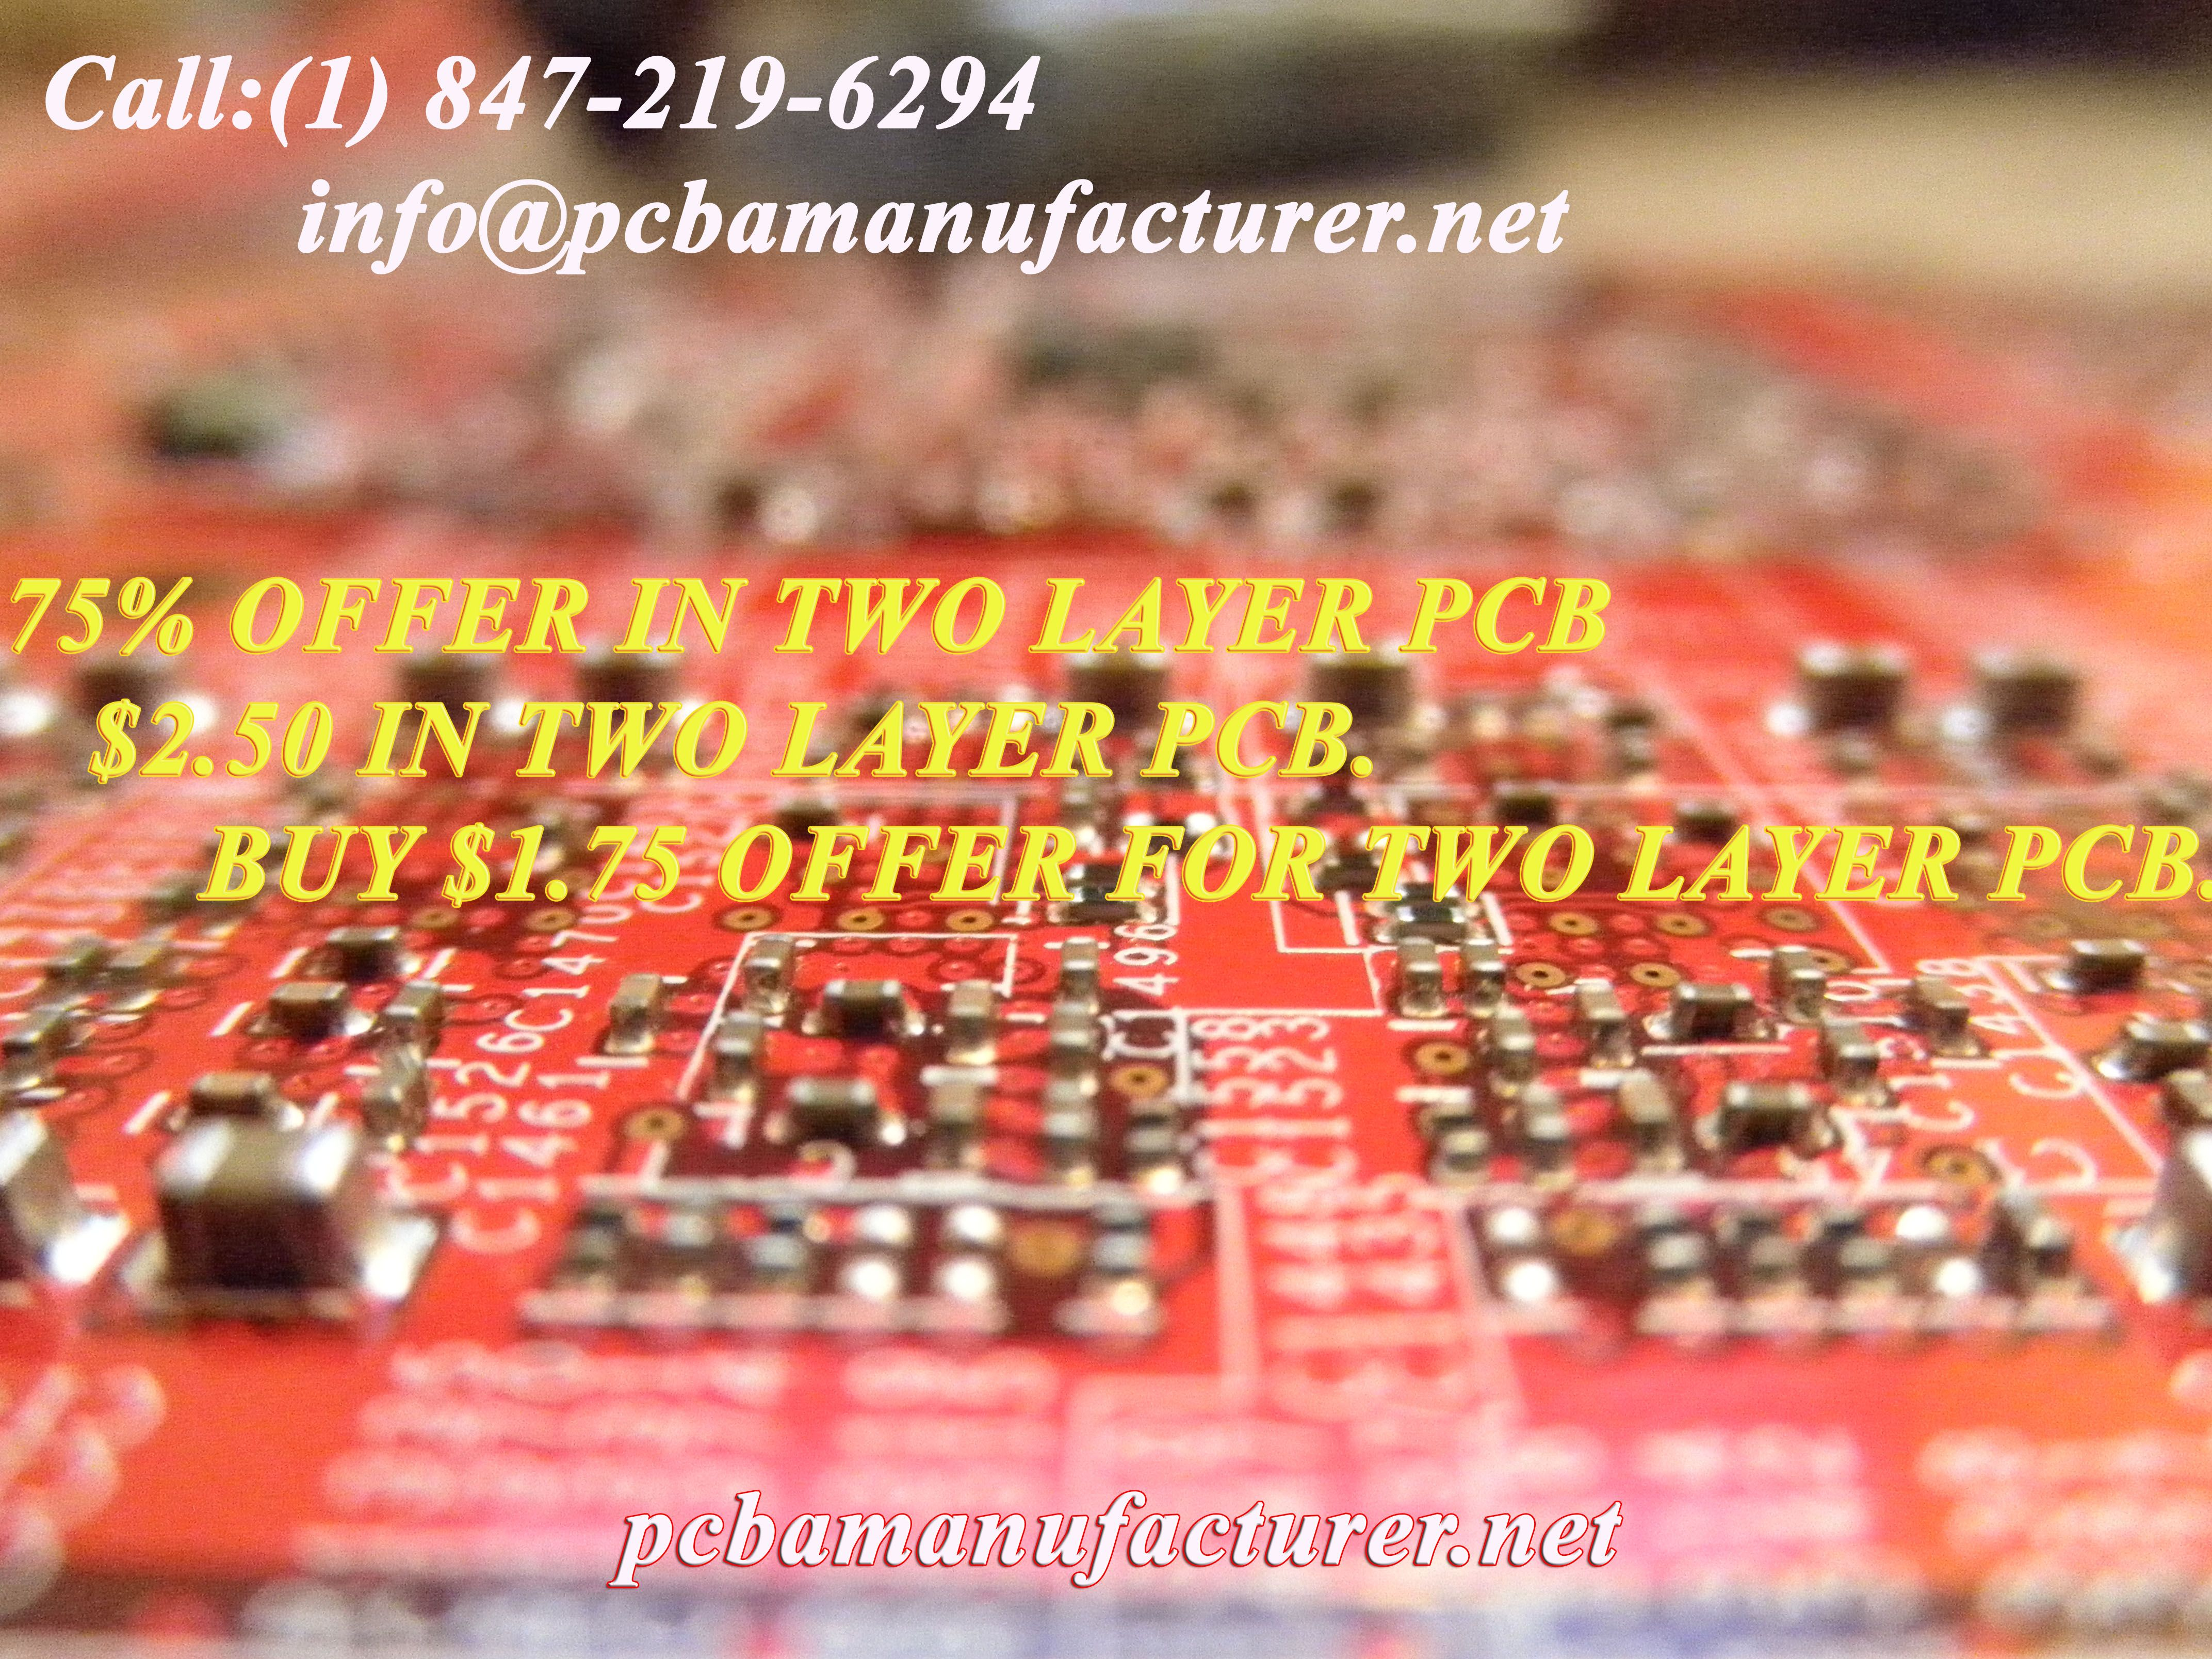 250 In Two Layer Pcb Pcba Manufacturer Is One Of The Top Usa Printed Circuit Board Buried Blind Via For Sale